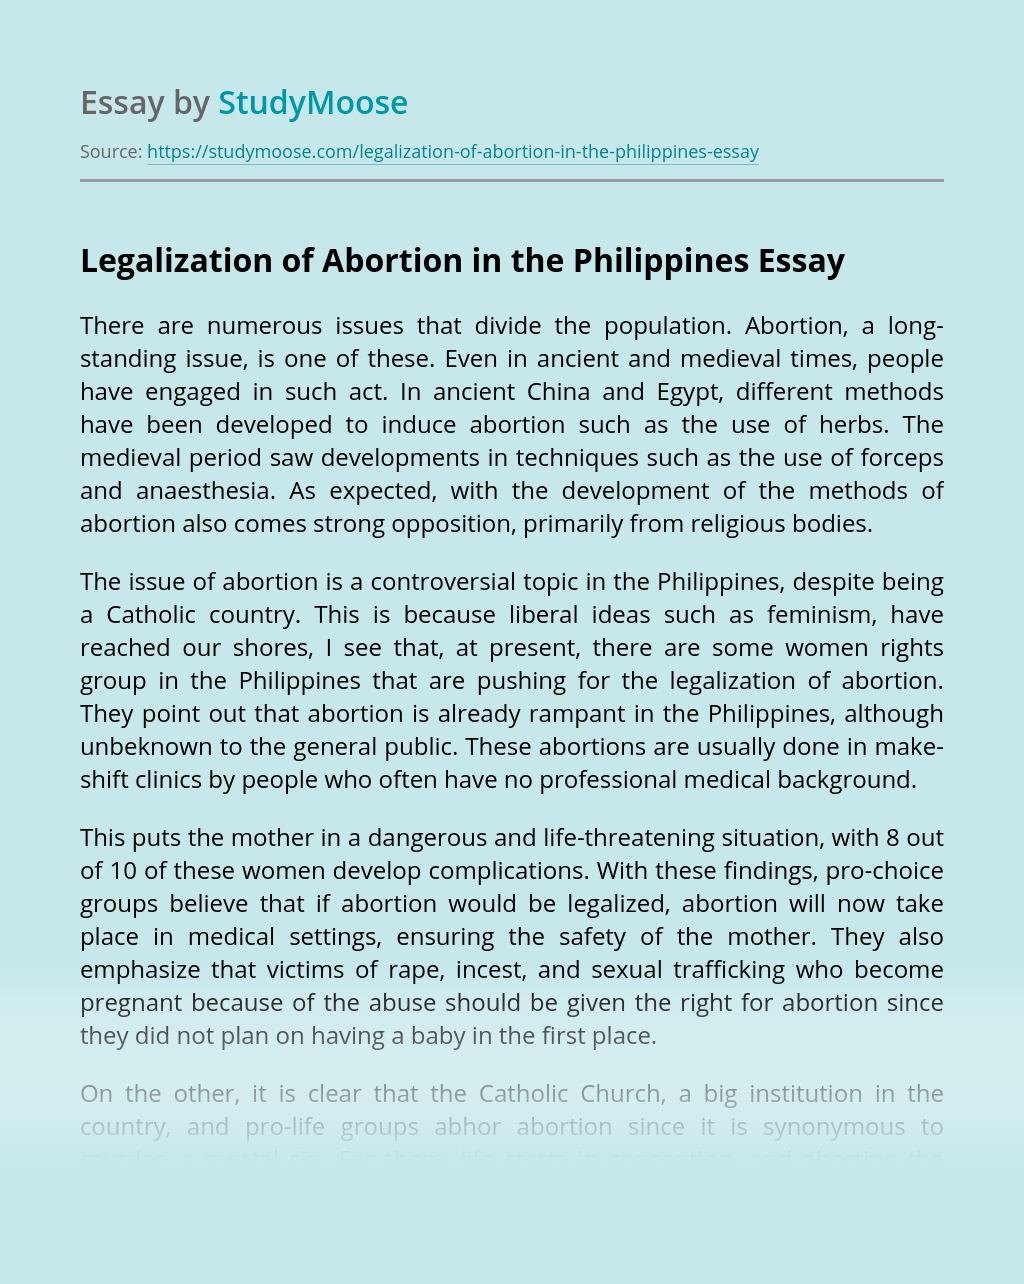 Legalization of Abortion in the Philippines